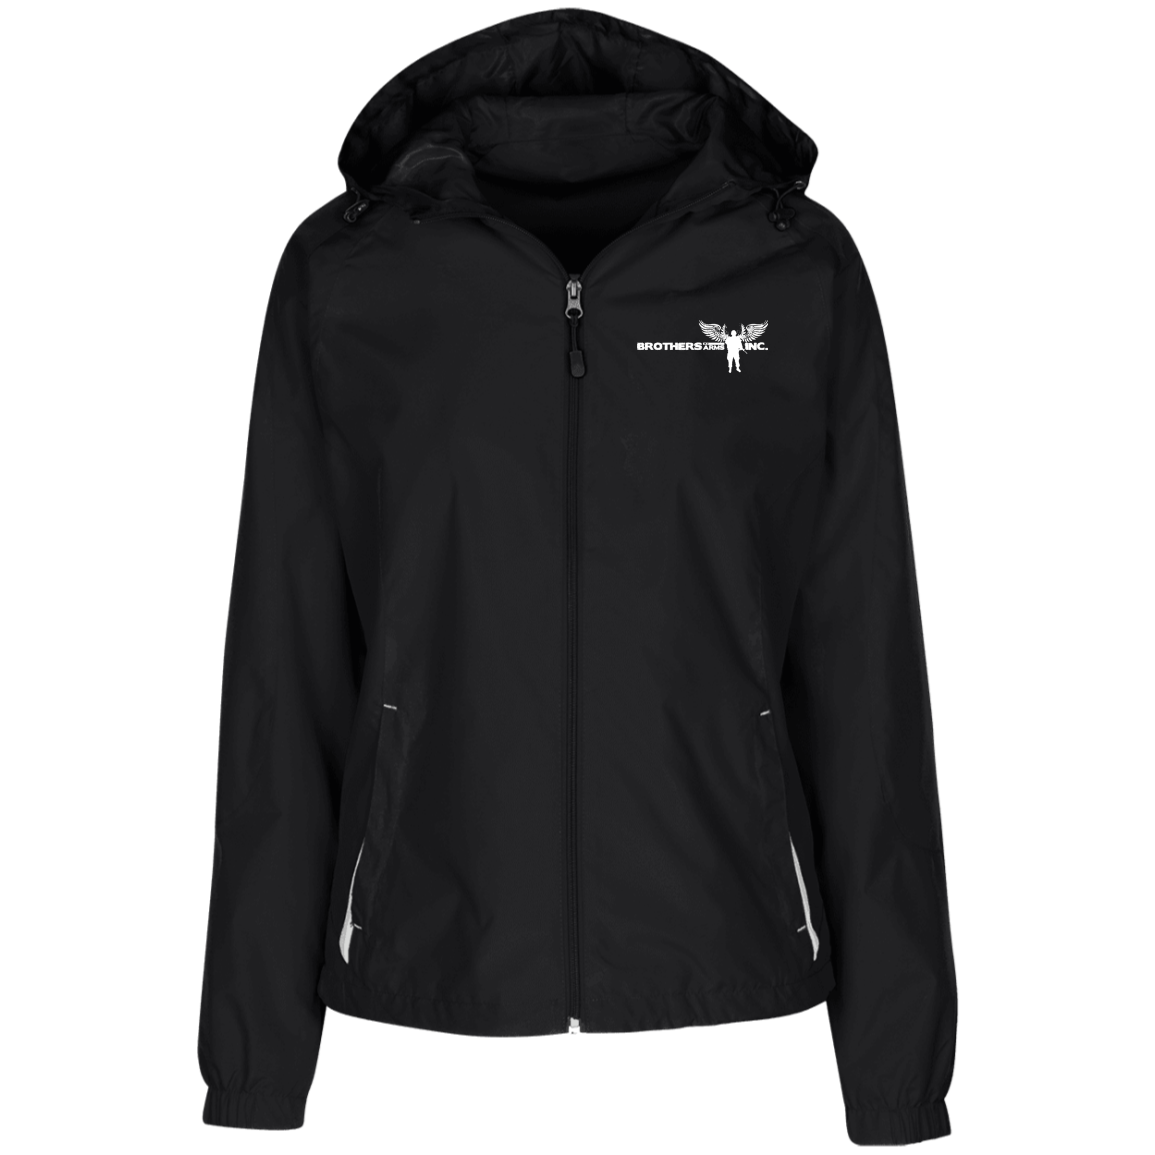 Ladies' - Brothers at Arms  - Lined Hooded Windbreaker